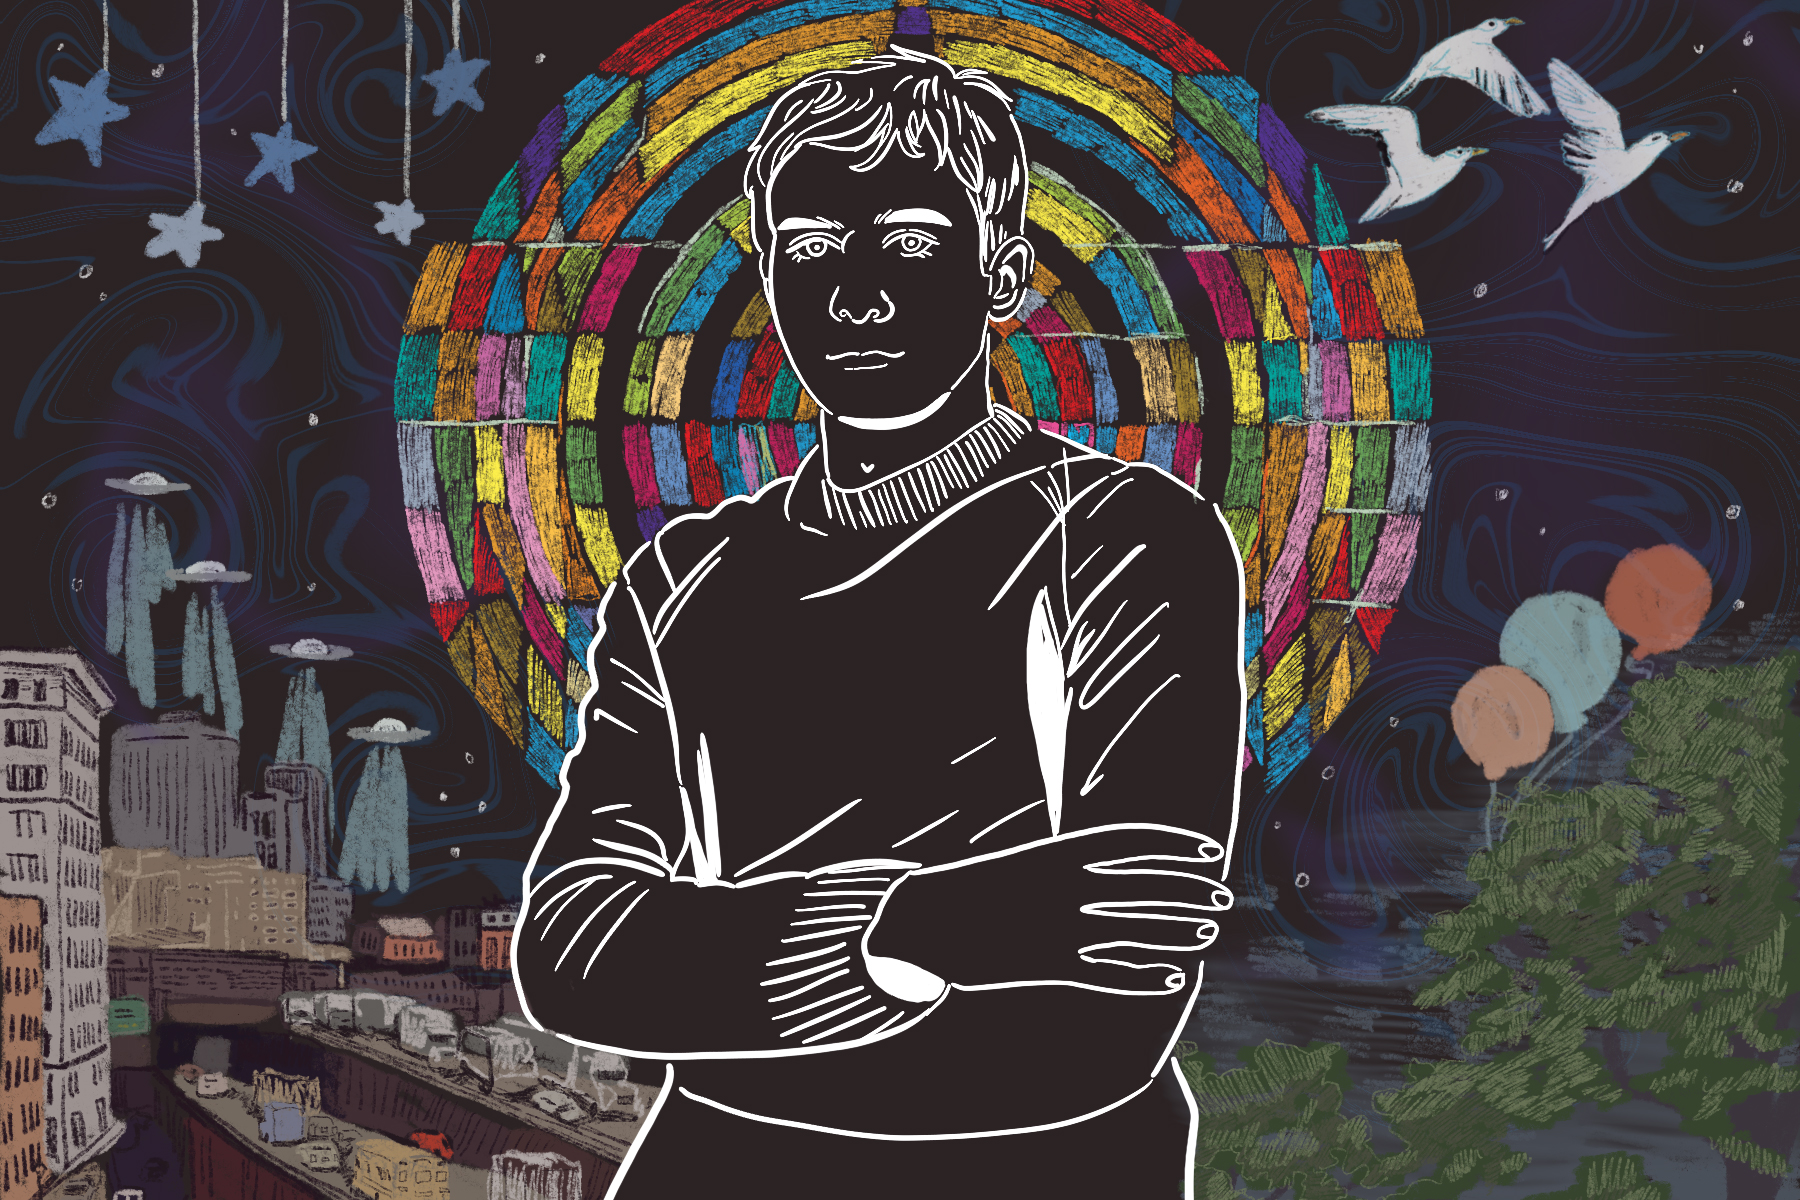 Illustration by Baz Pugmire of Sufjan Stevens